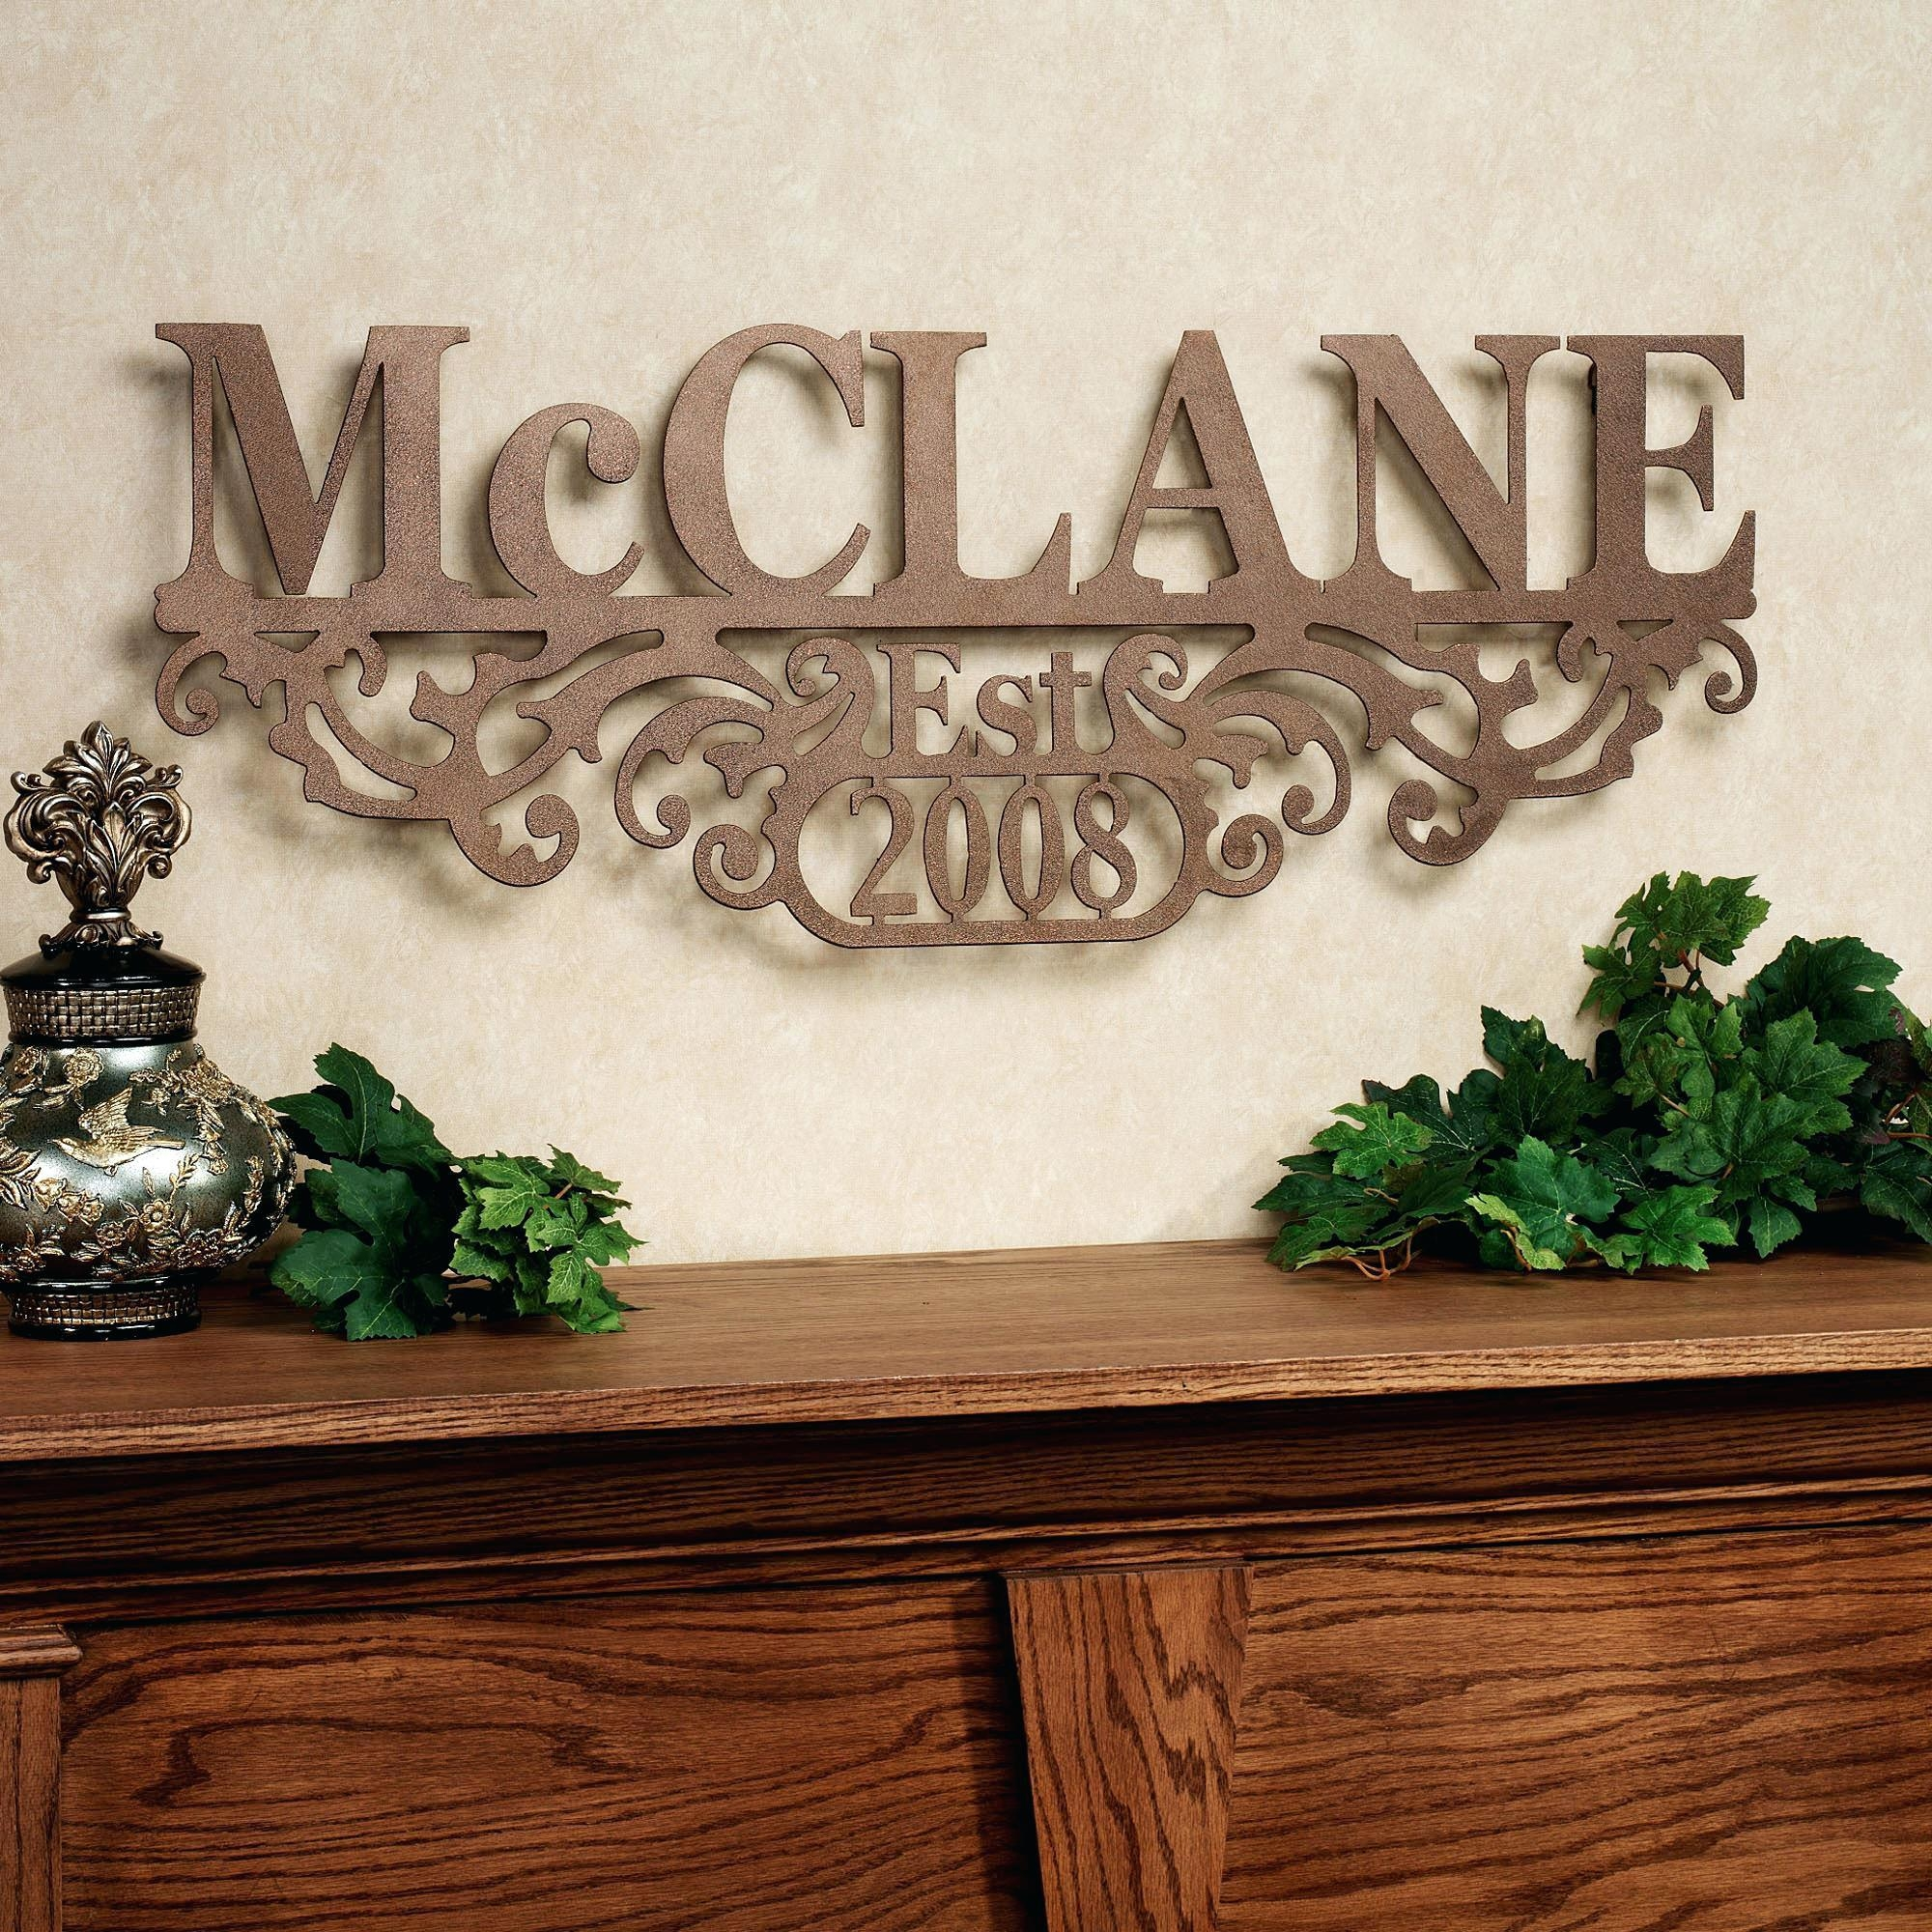 Wall Ideas : Last Name Metal Wall Art Family Metal Wall Art Uk For Faith Family Friends Wall Art (Image 17 of 20)